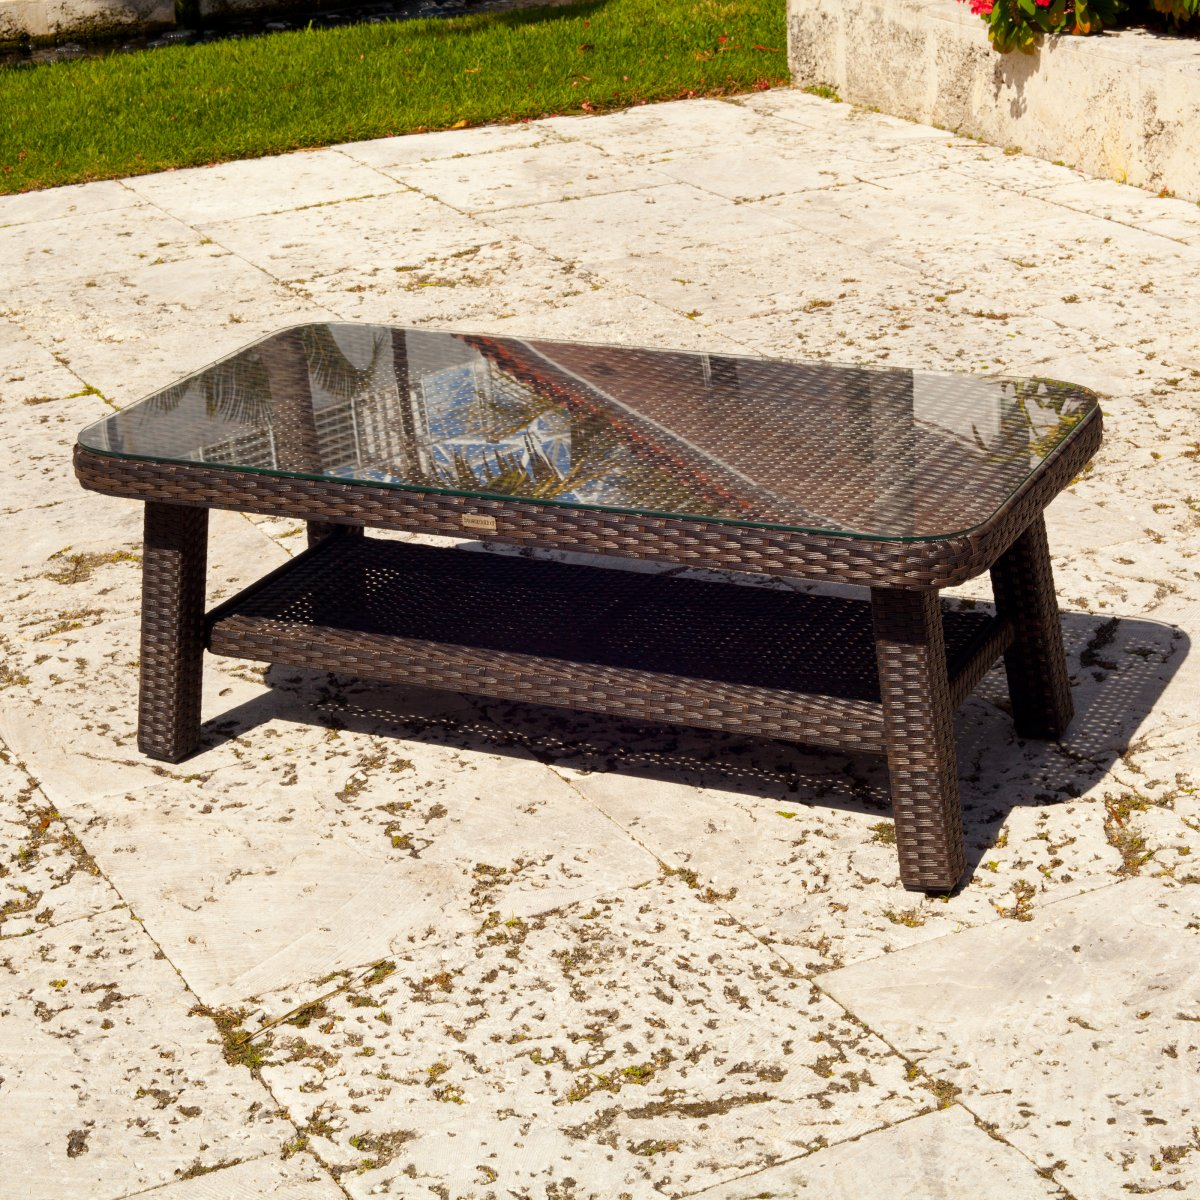 coffee table project plans modern outdoor diy double for tic atmosphere patio accent tables side with cooler very mirrored bedside circular cotton tablecloths bourse antique